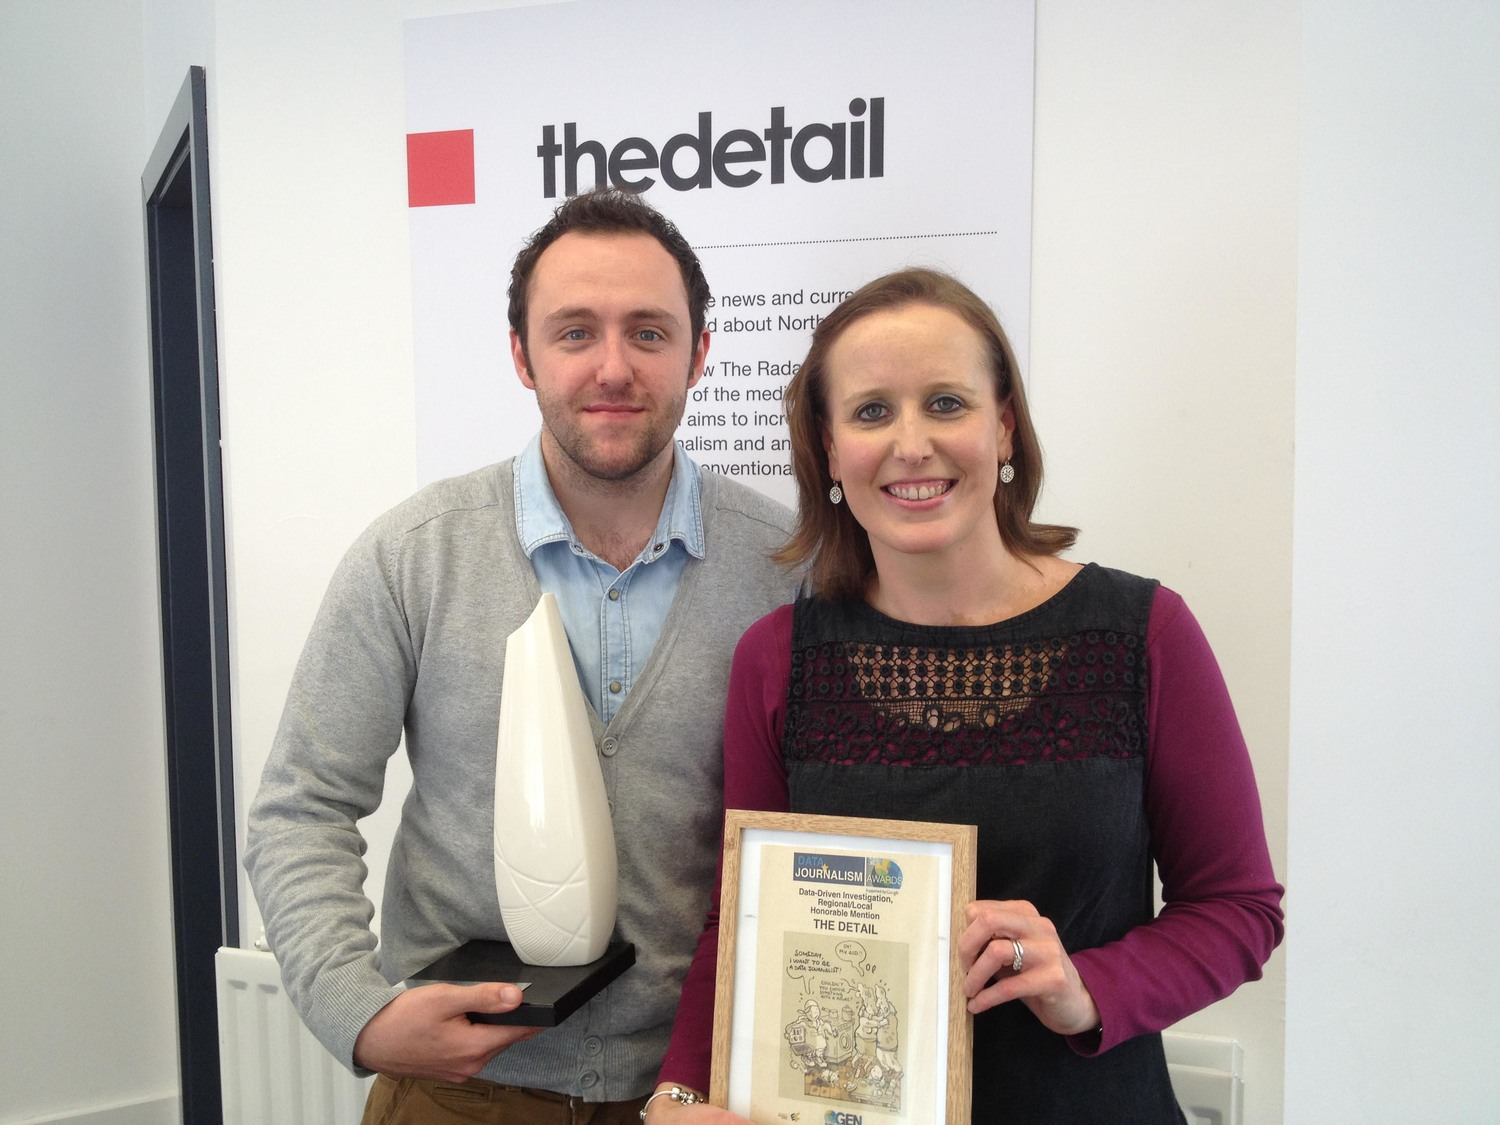 Kathryn Torney and Niall McCracken with their CIPR 2012 awards